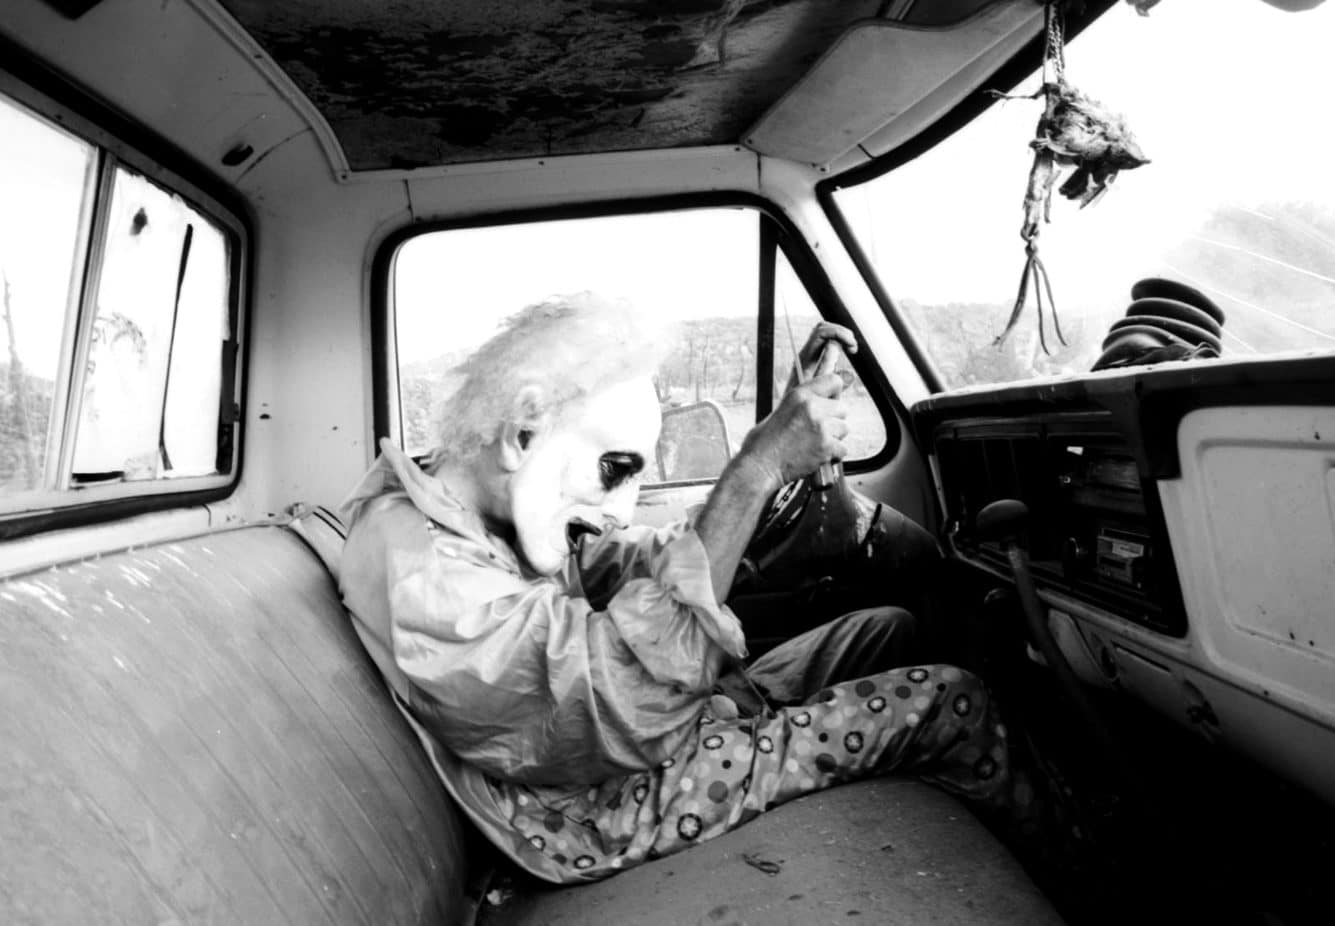 Joel Orozco, Beyond the Mask: Man wearing a mask inside a car holding the stirring wheel with sharp object